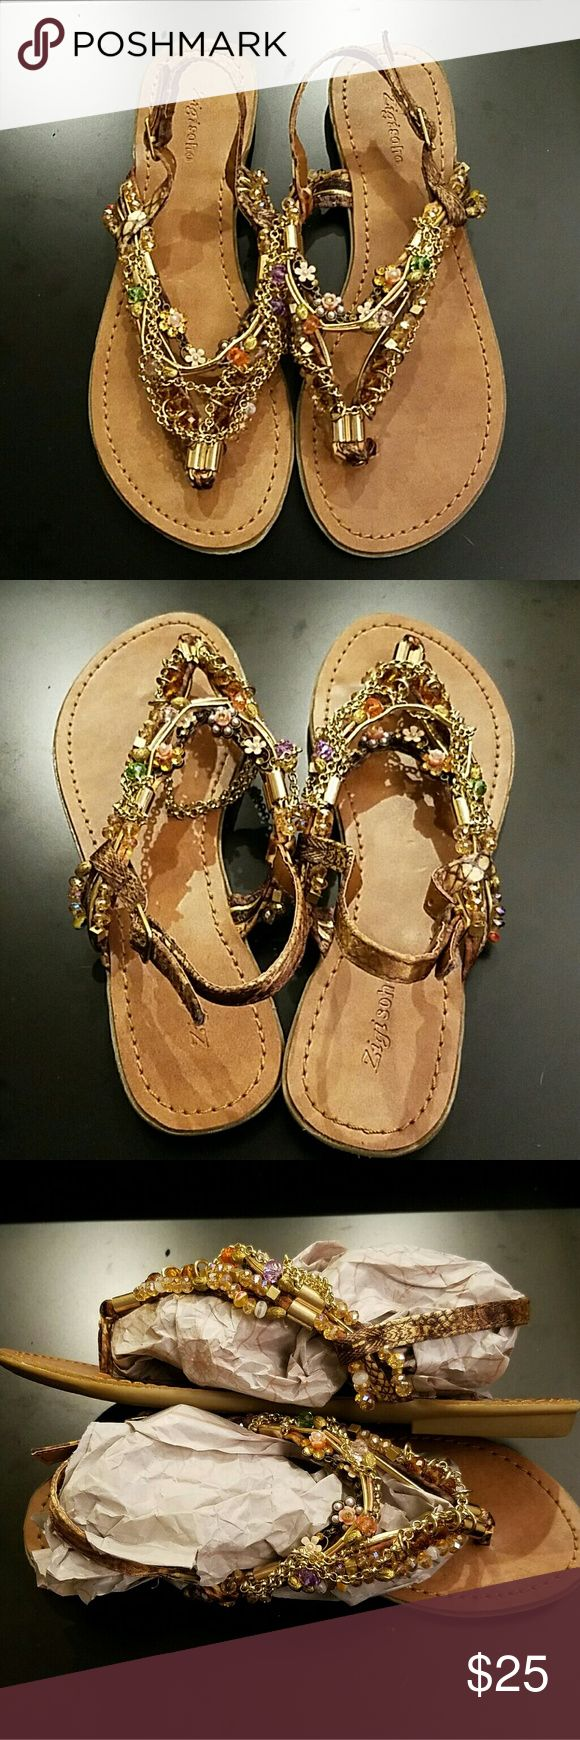 "Gorgeous Zigi Soho ""Precious"" Beaded Sandals Gorgeous Zigi Soho ""Precious"" Beaded Sandals. These feature Gold tone chains, Pink & Orange flowers, multi colored faceted beads, and gold toned hardware. Straps are a brown & gold snake skin print. BEAUTIFUL sandals. They could very easily be dressed up or down. Adjustable ankle strap. No signs of any wear - in LIKE NEW Condition. No box.   ✔offers ✔questions 🚫Trades, 🚫Smoking   🐶Friendly home. Zigi Soho Shoes Sandals"